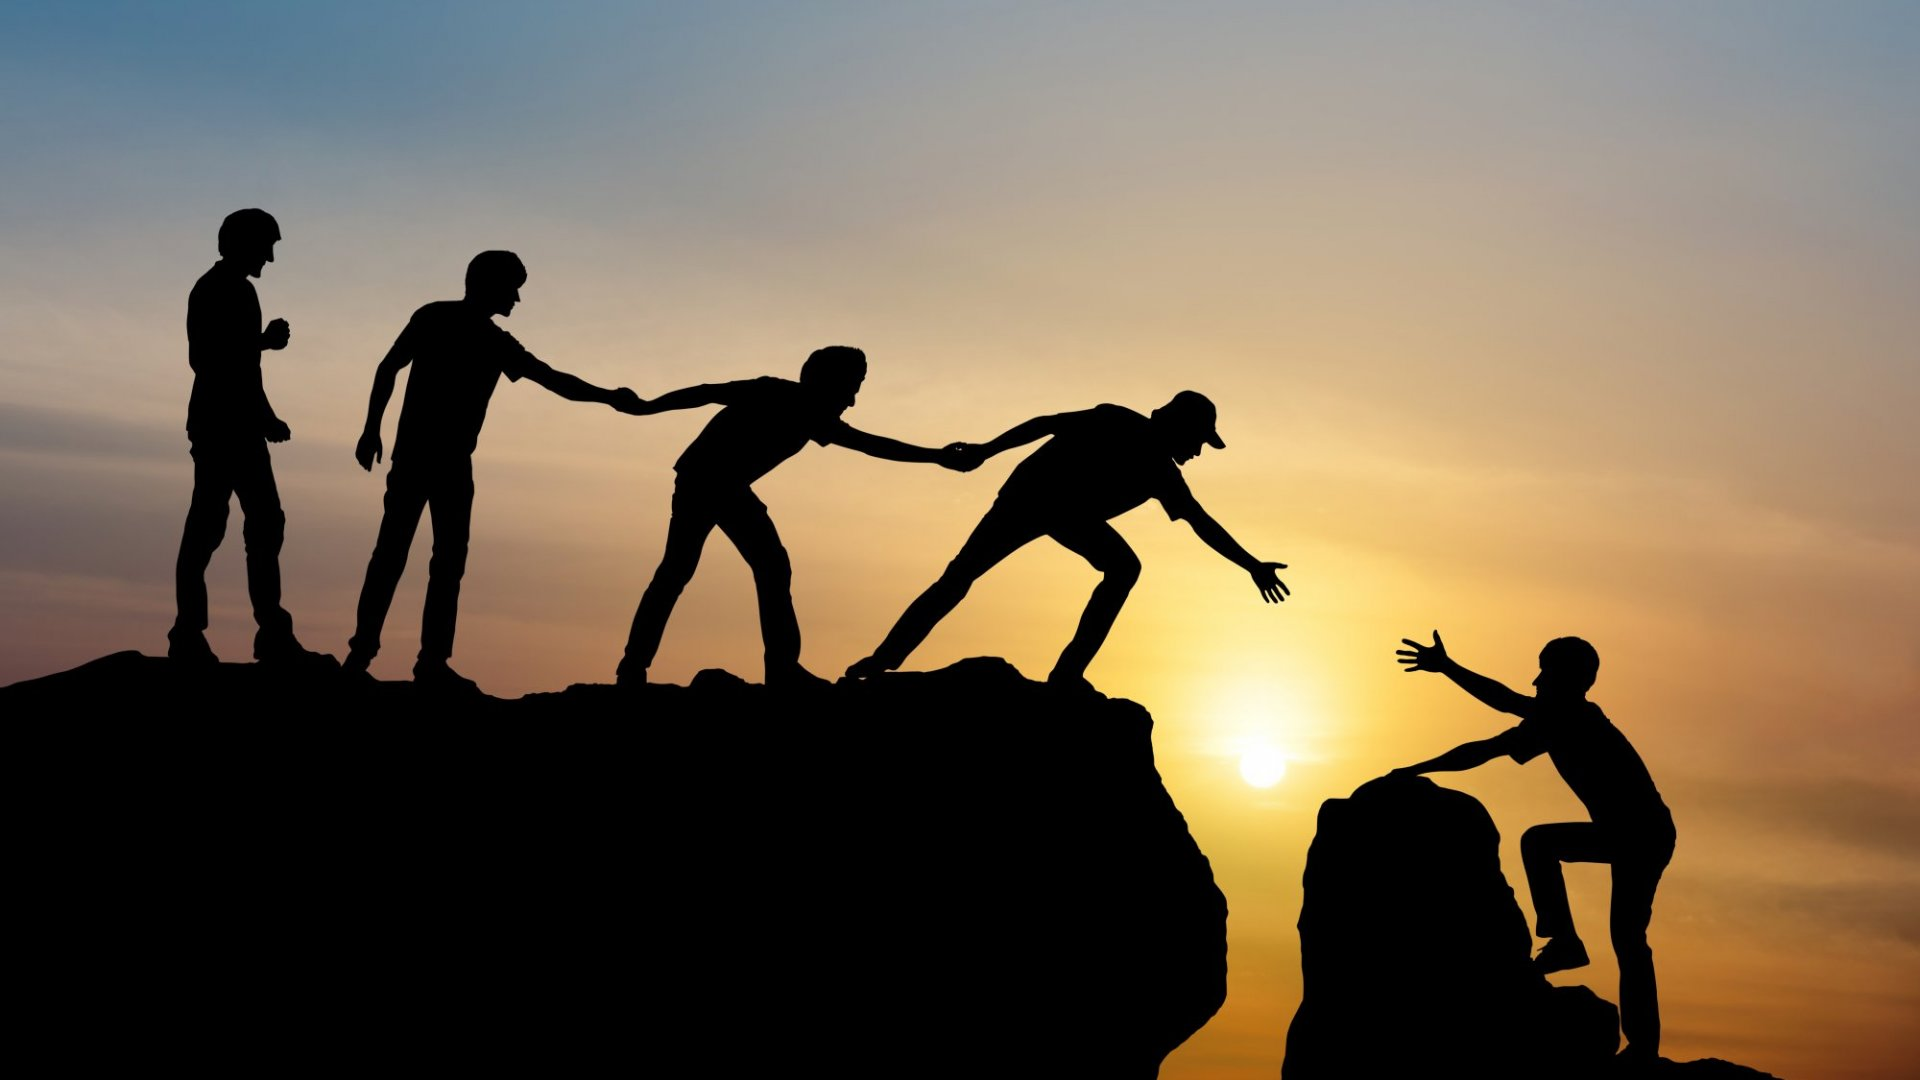 17 Inspiring Quotes About the Remarkable Power of Teamwork